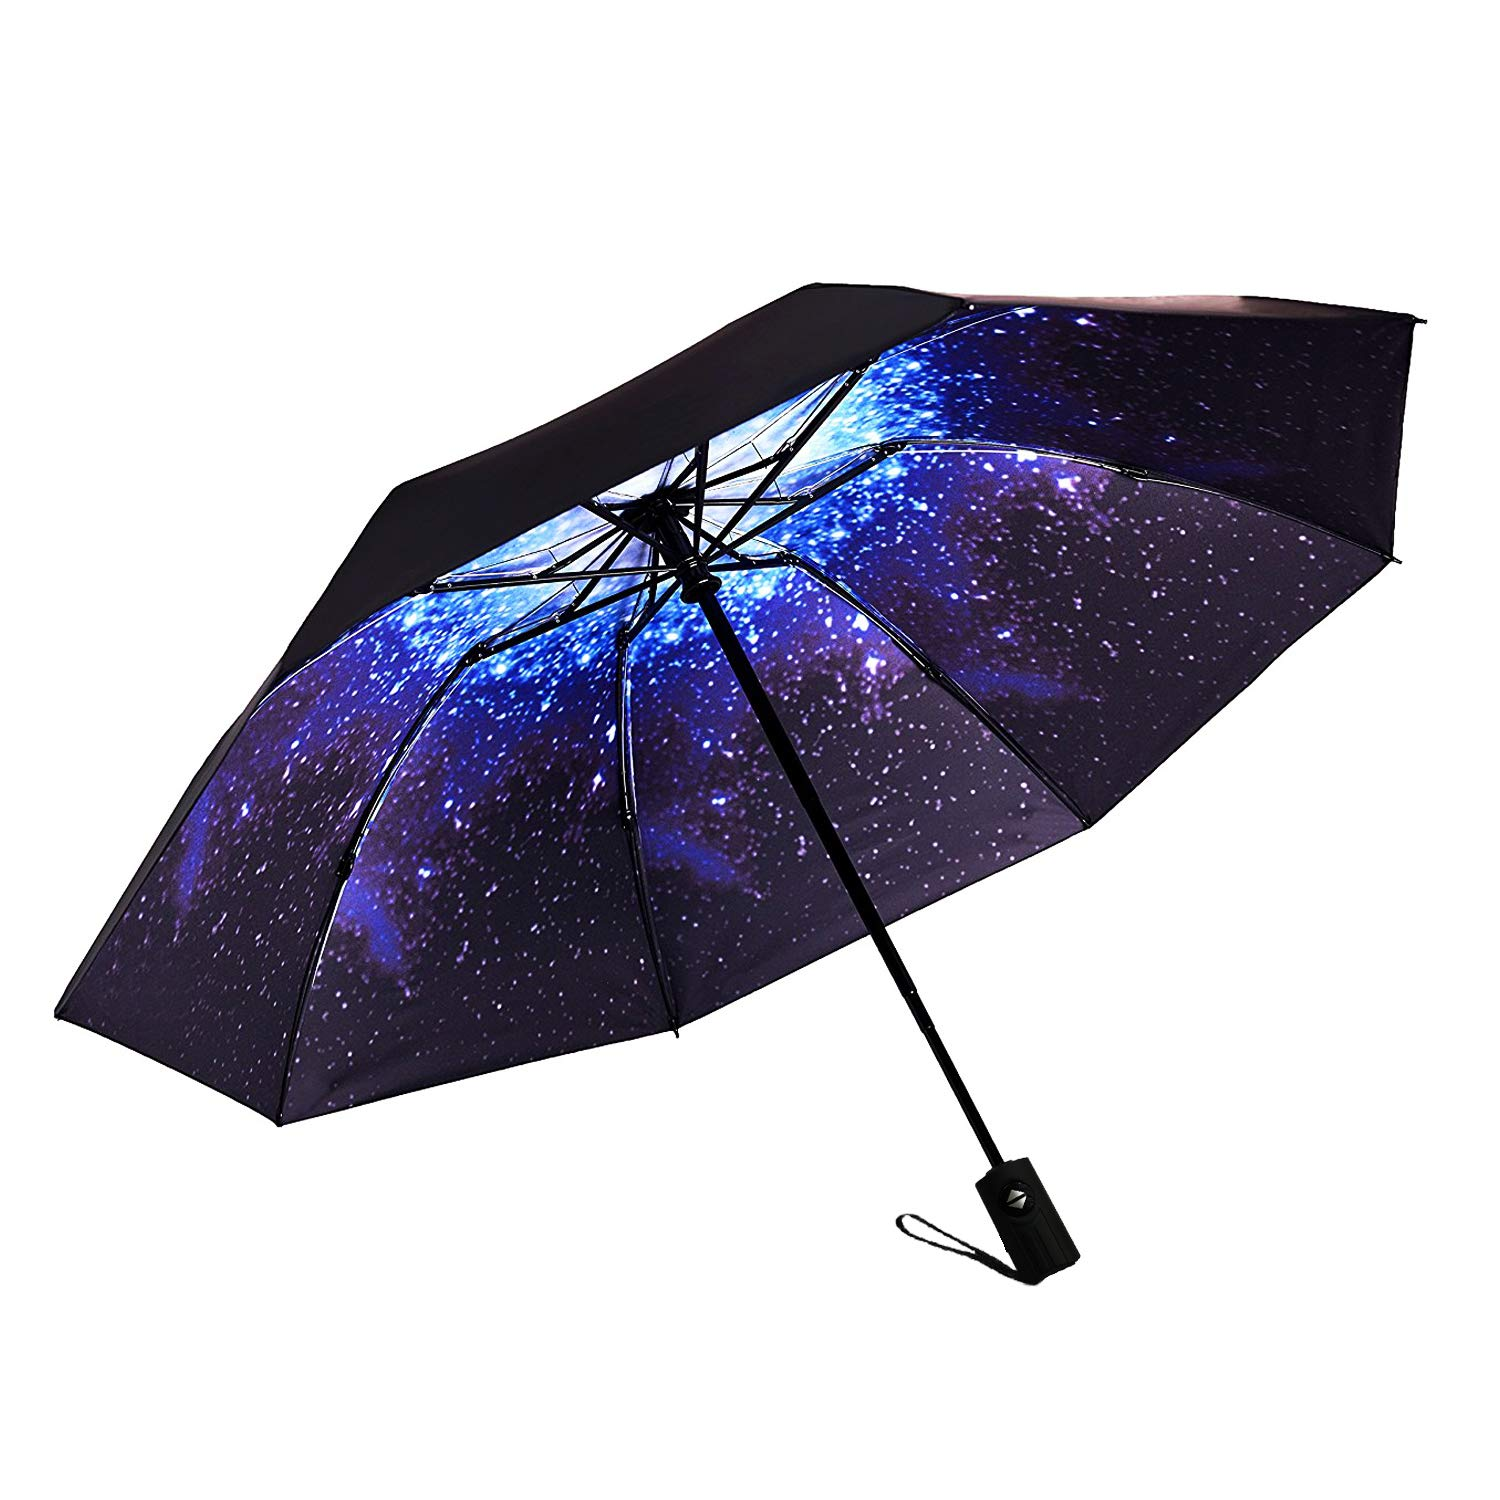 b07df4609543d Amazon.com: Marriarics Travel Umbrella Windproof, Black Glue Anti UV  Coating, Compact Folding Umbrellas for Women Men, Auto Open Close (Starry  Sky): ...